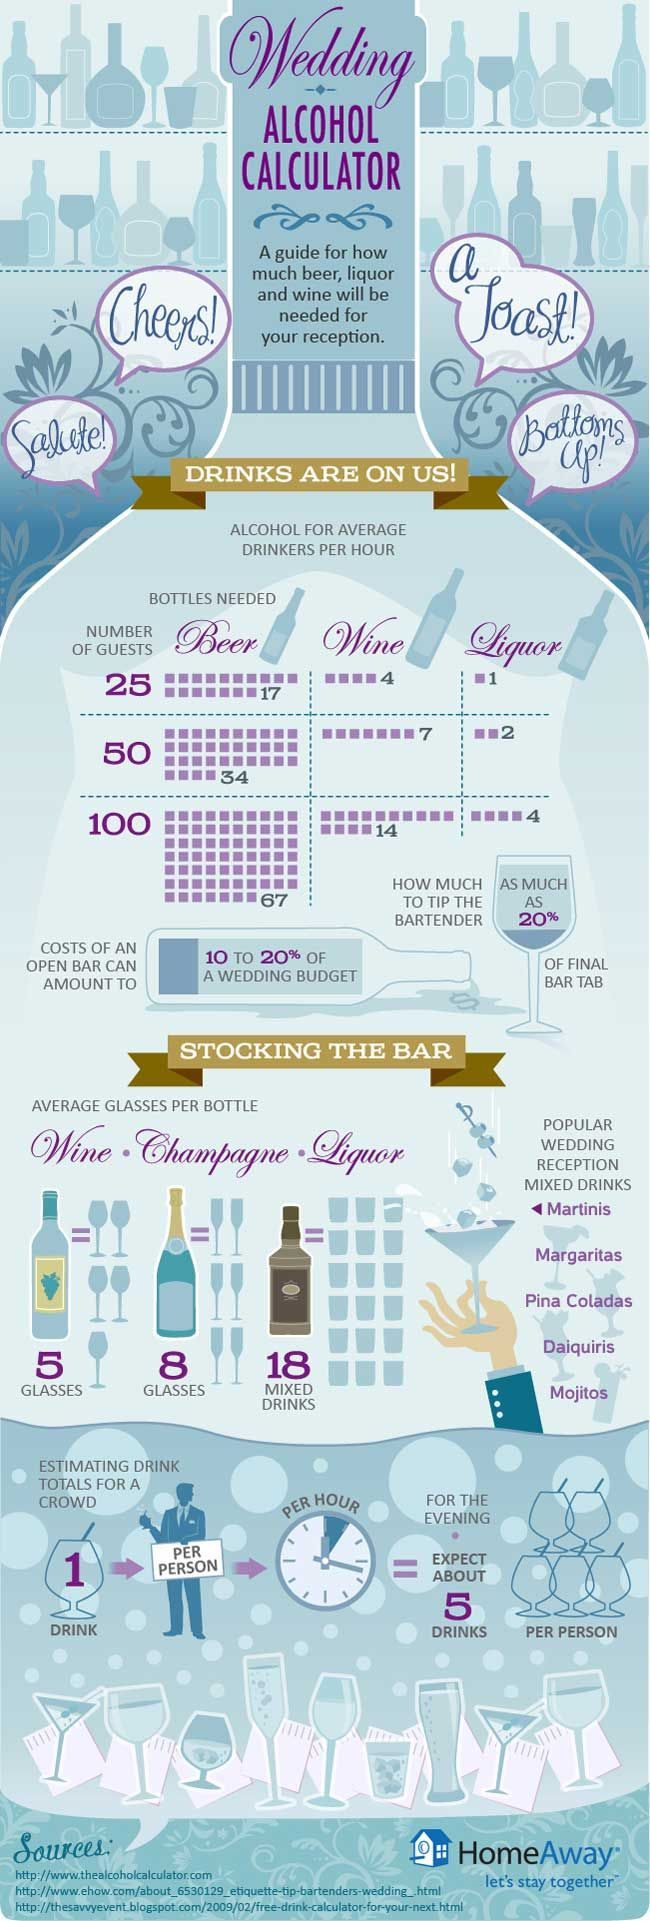 These Diagrams Are Everything You Need To Plan Your Wedding Alcohol Calculatorwedding Tipswedding Receptionwedding